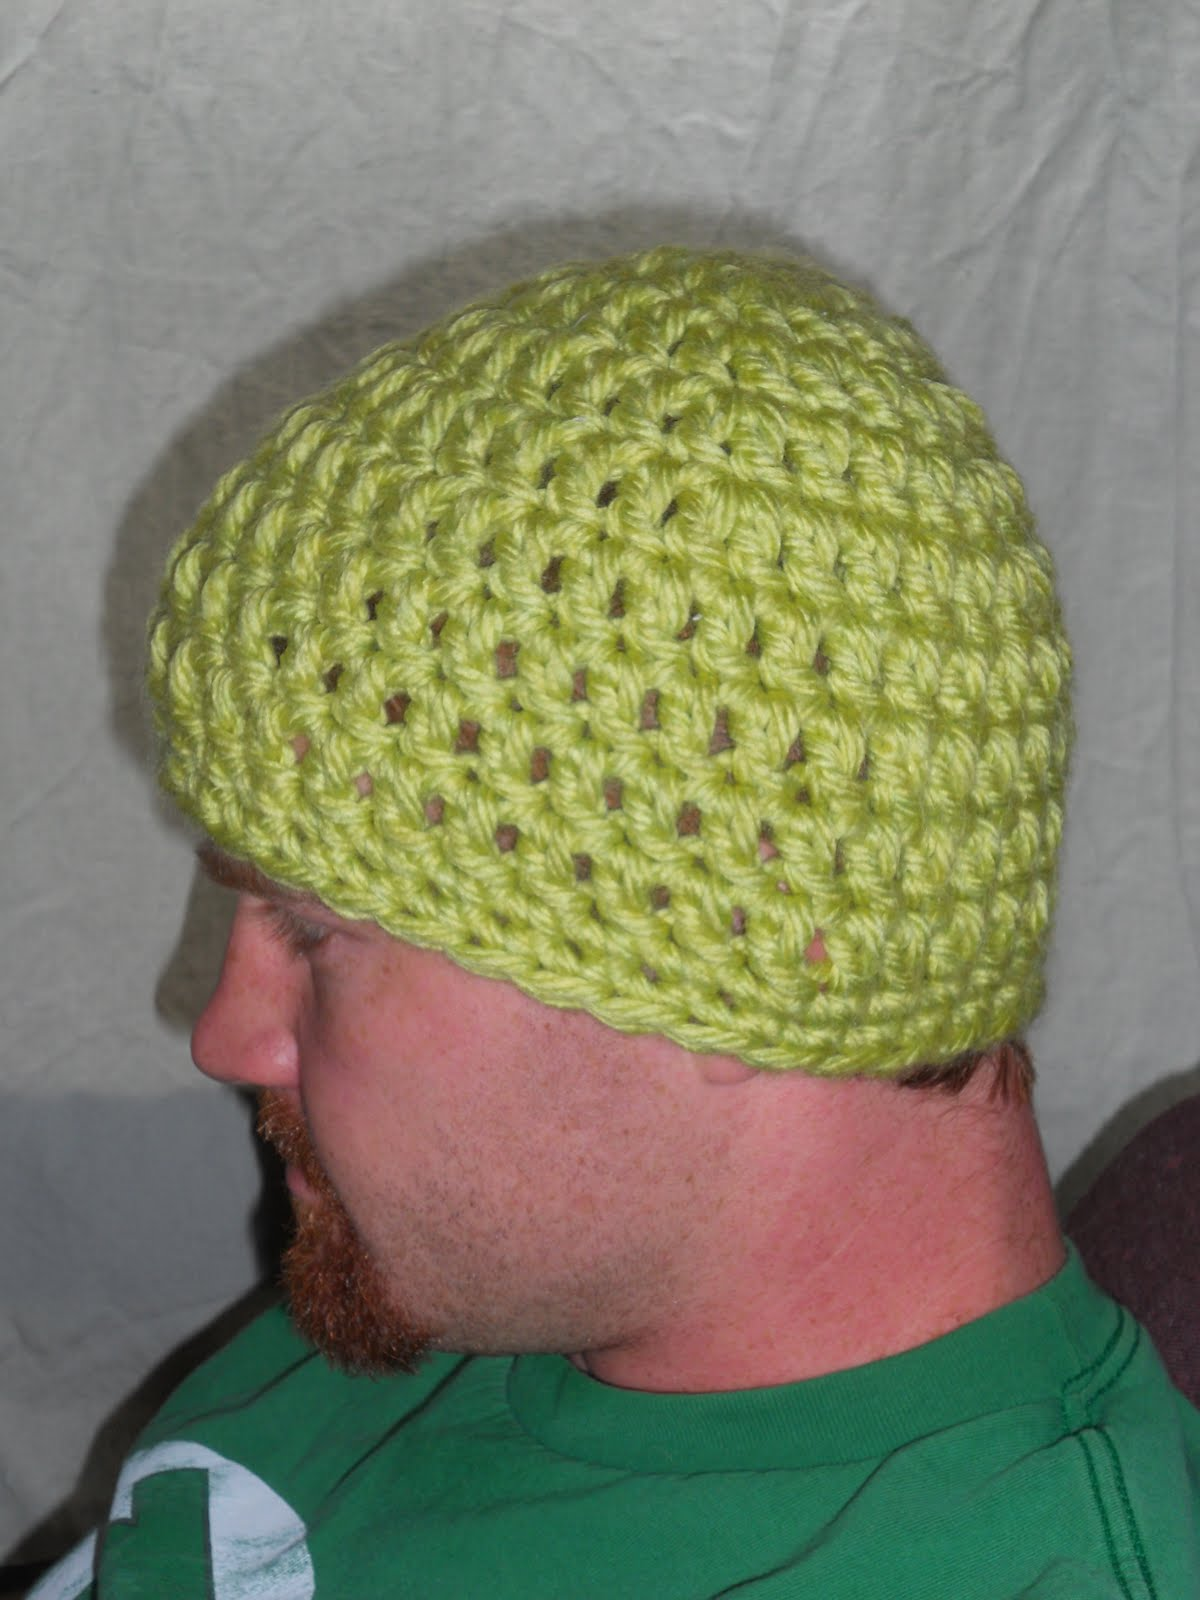 Free Crochet Patterns With Super Bulky Yarn : Crafty Woman Creations: Free Basic Super Bulky Beanie Pattern